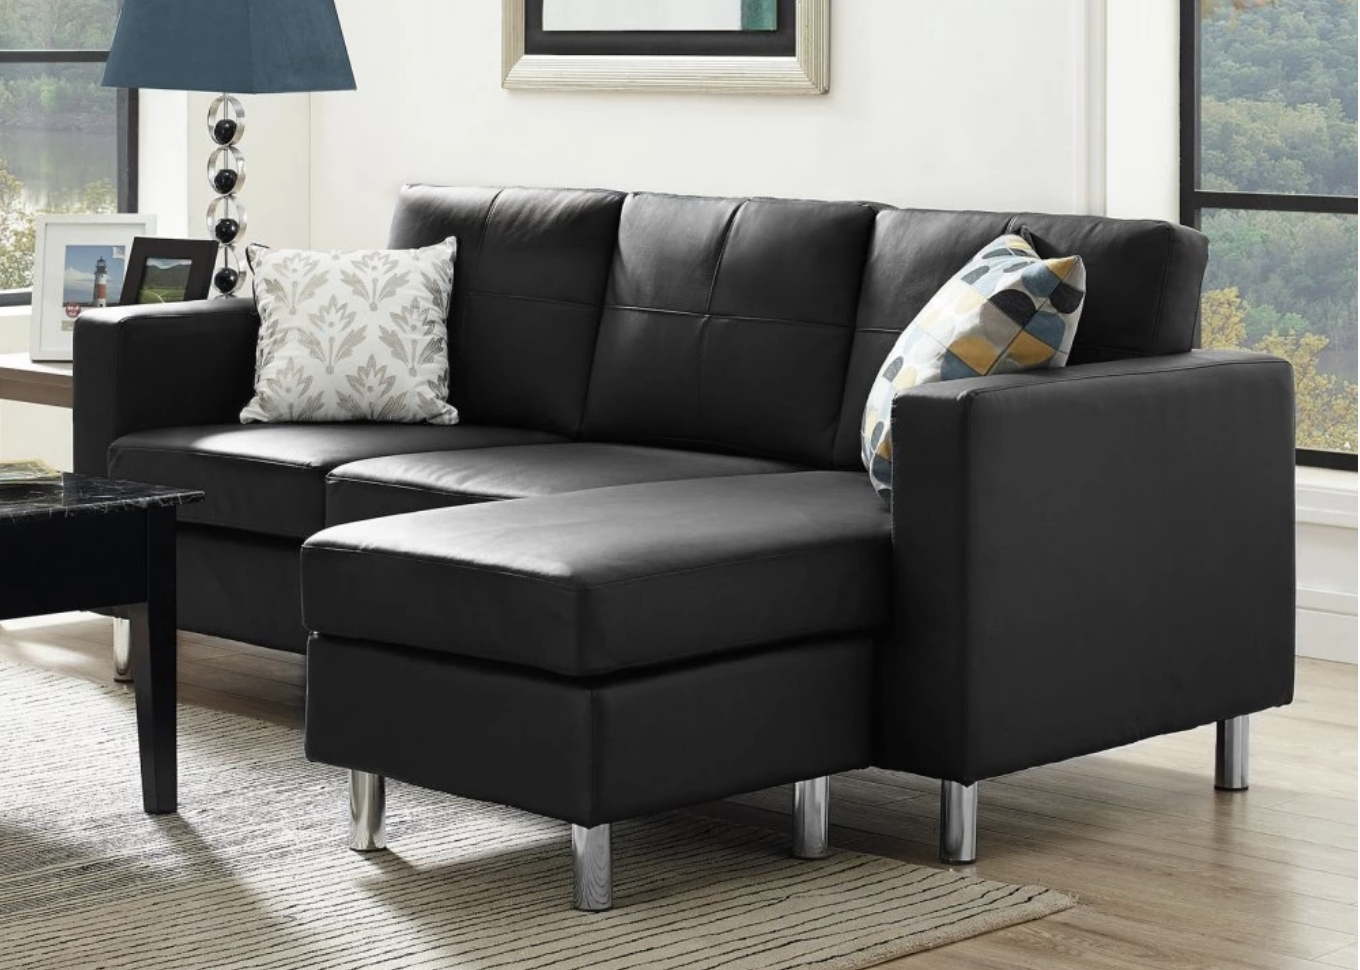 Modern Sectional Sofas For Small Spaces Within Most Up To Date 75 Modern Sectional Sofas For Small Spaces (2018) (View 3 of 15)